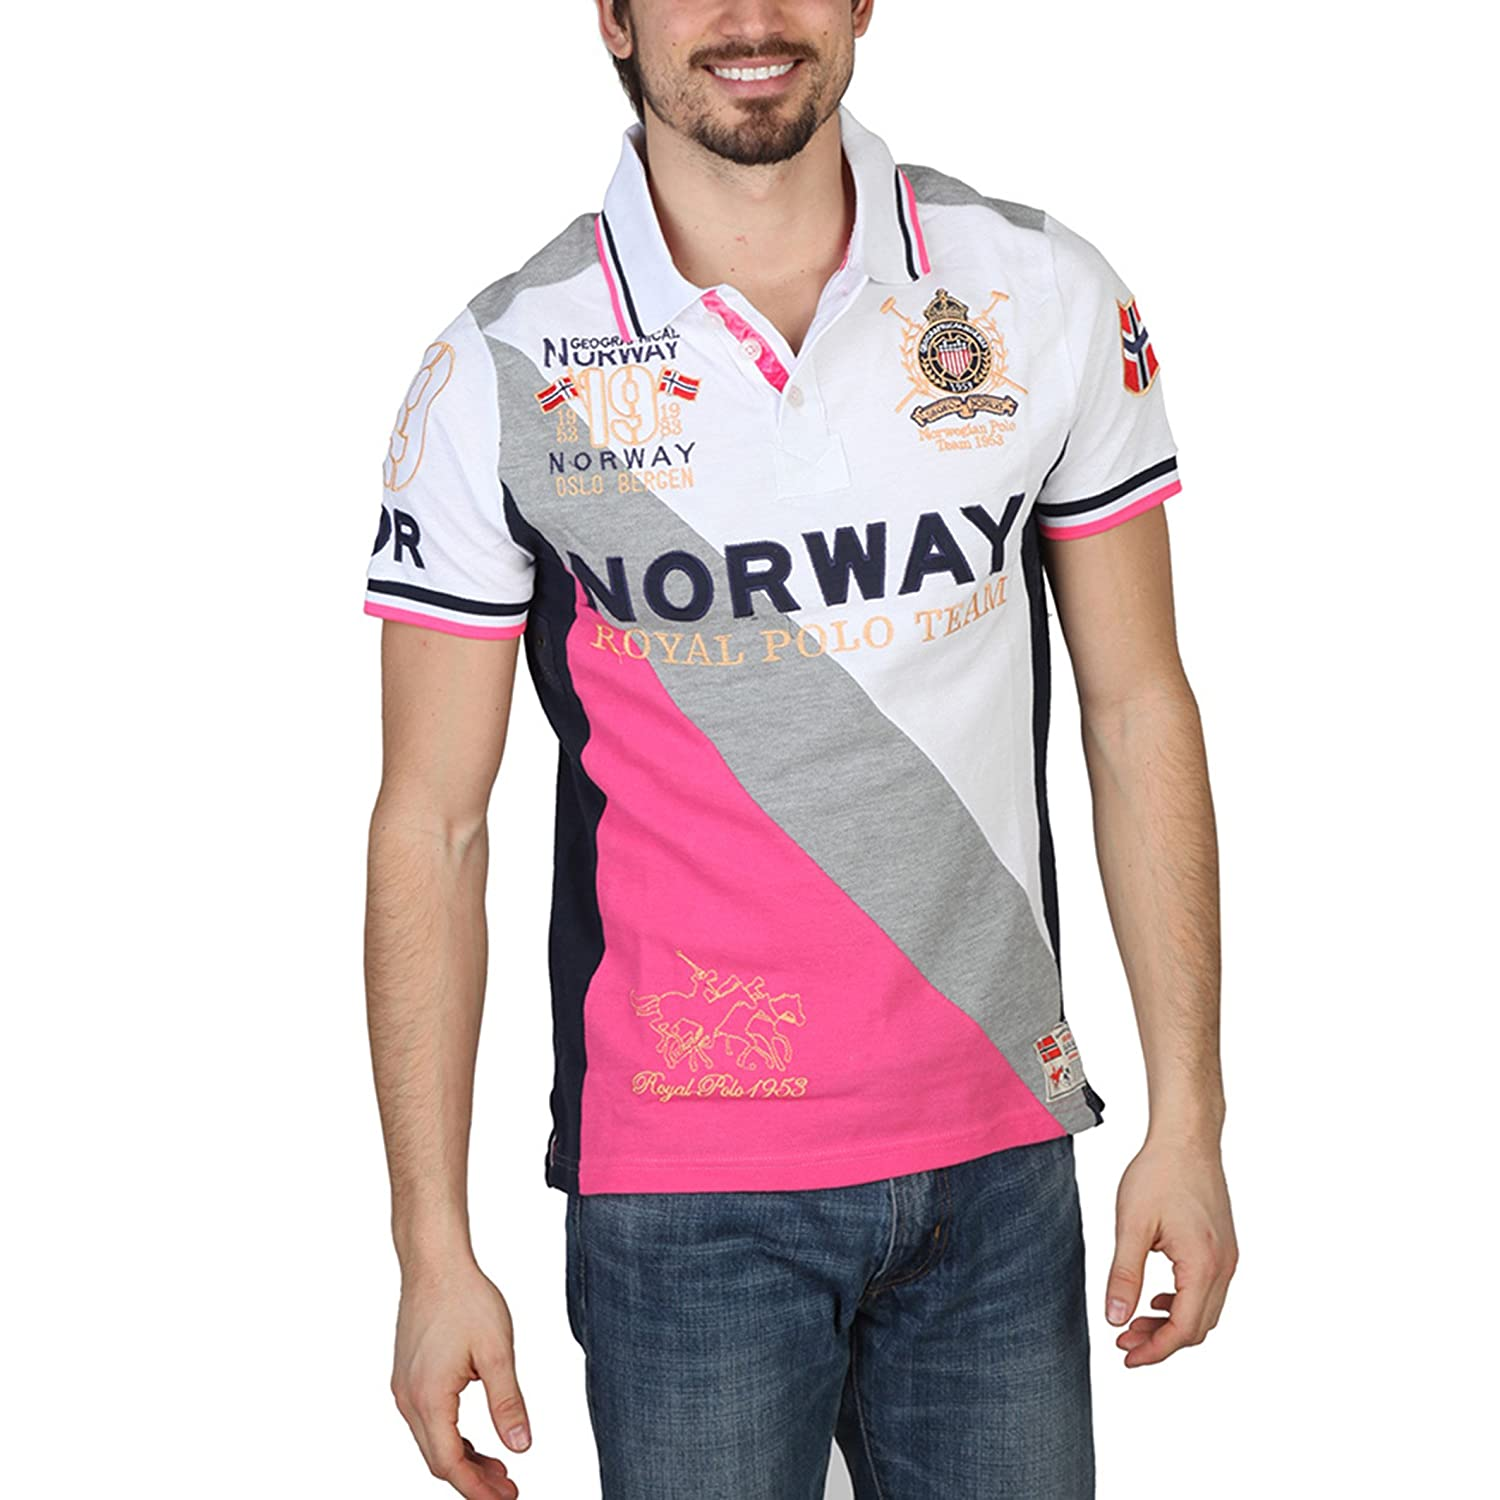 Polo Geographical Norway Korway man blanquecino - hombre - L ...